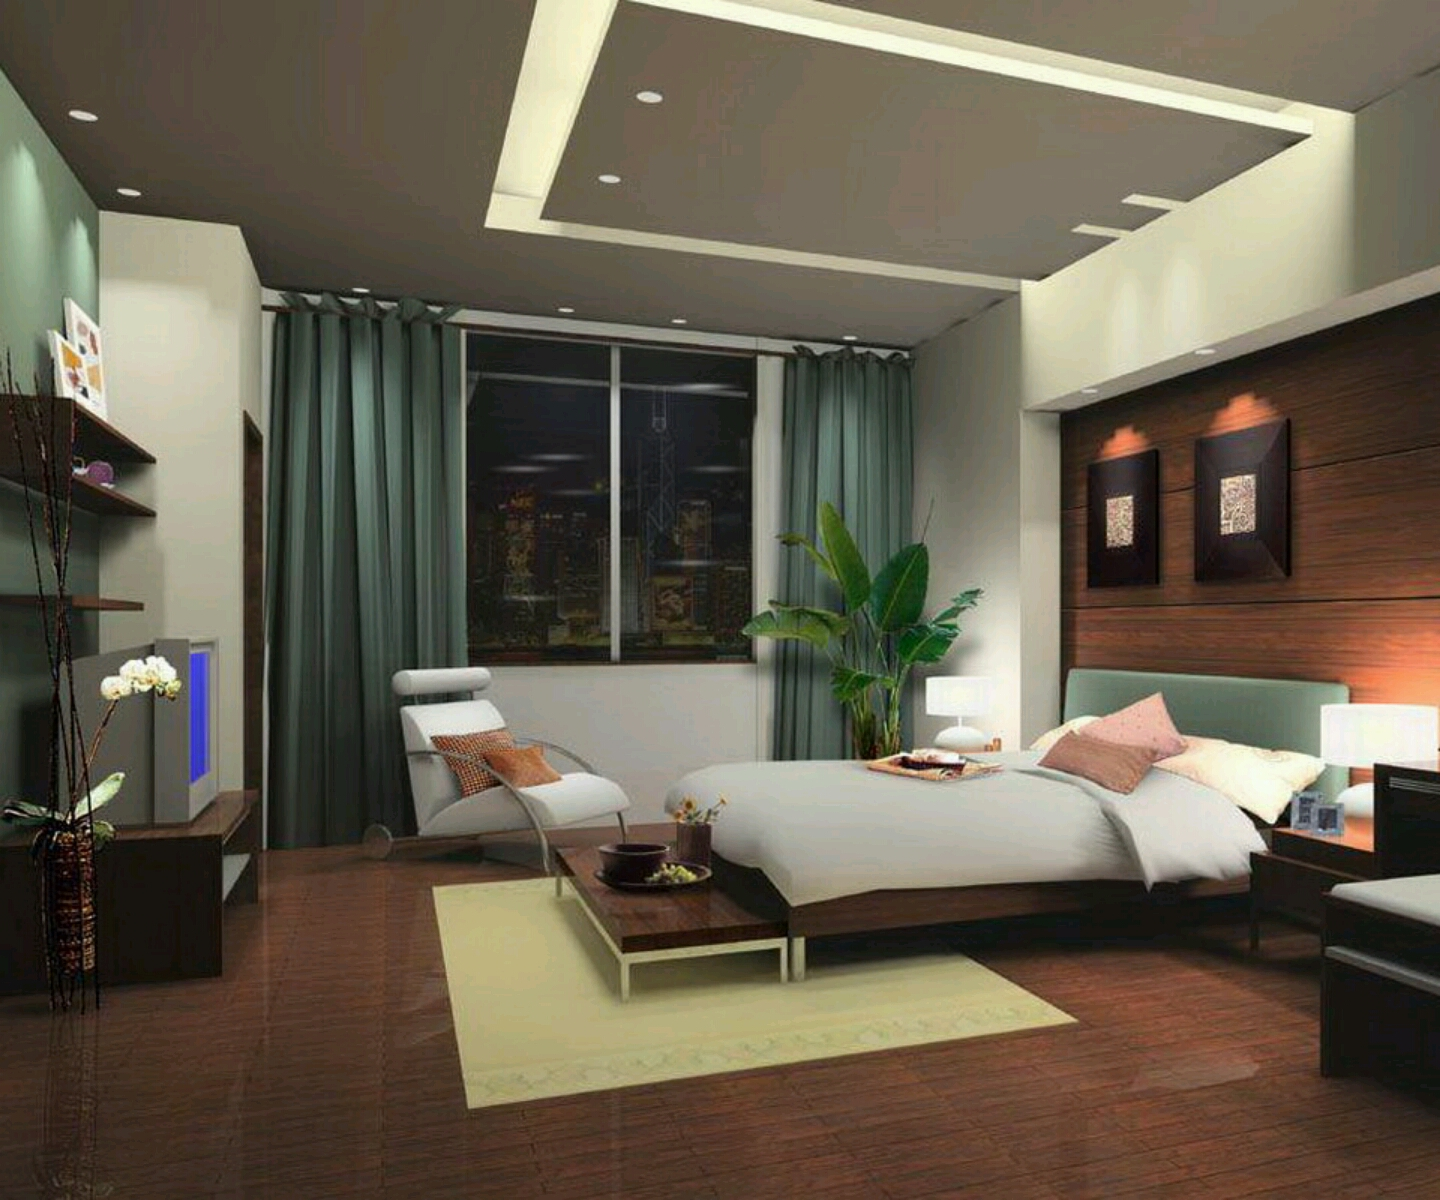 Bedrooms Designs Glamorous Of Best Modern Bedroom Designs Images